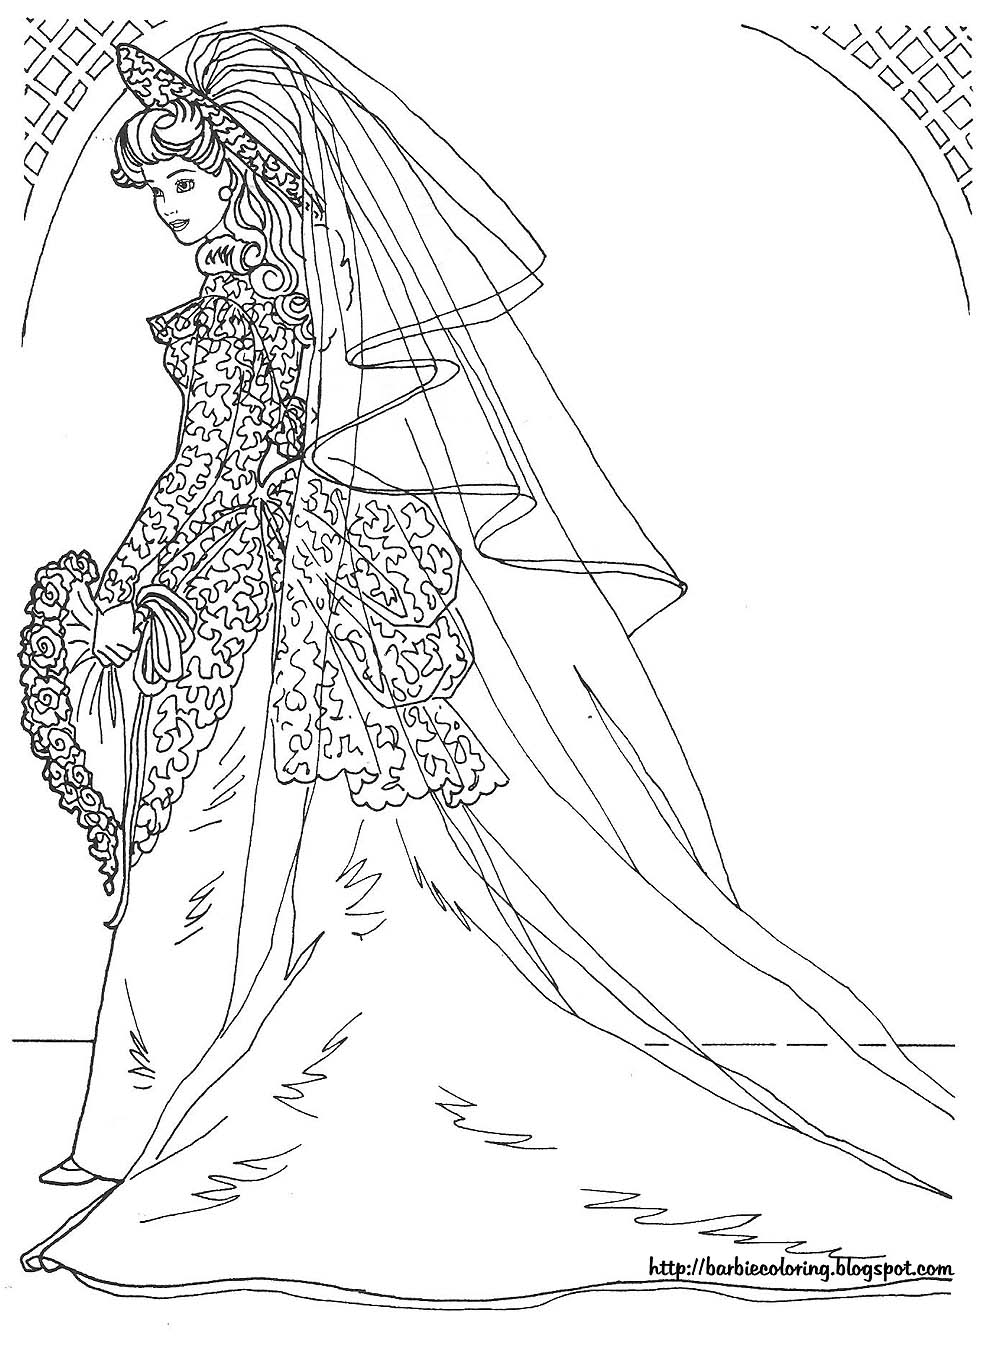 BARBIE COLORING PAGES BARBIE AND